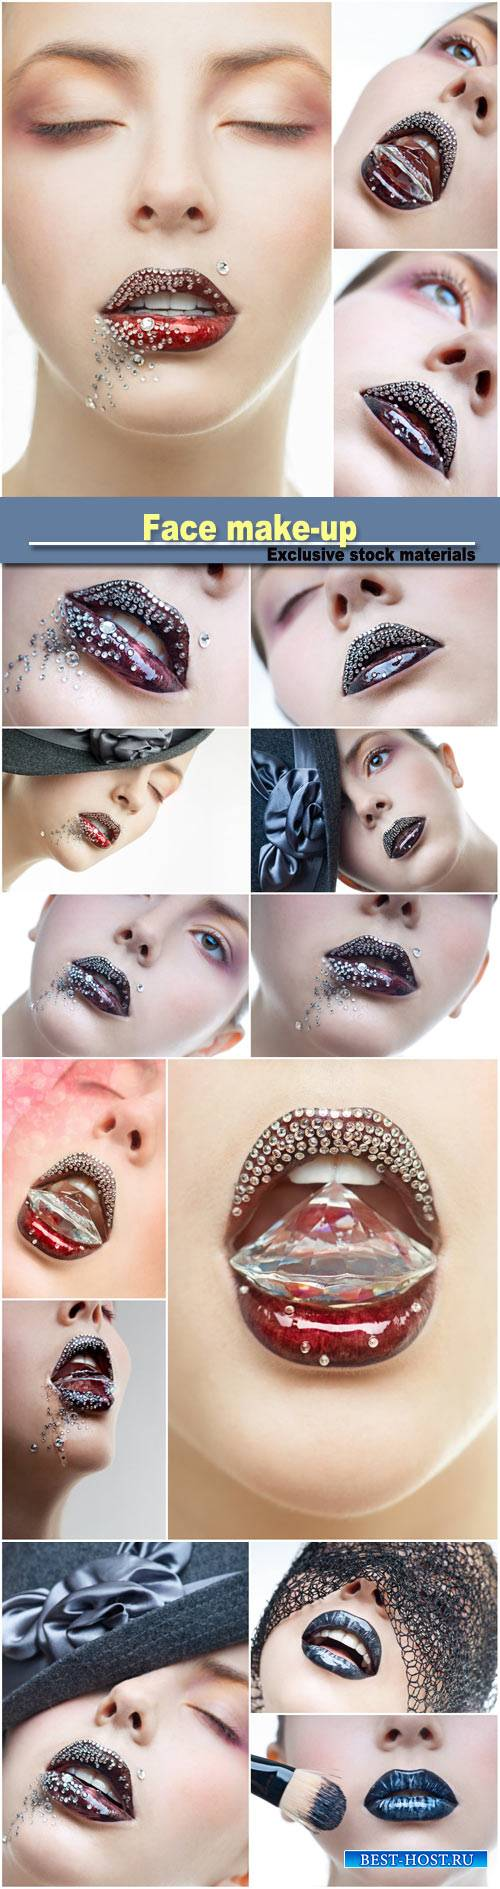 Face make-up, bright lips in the rhinestones